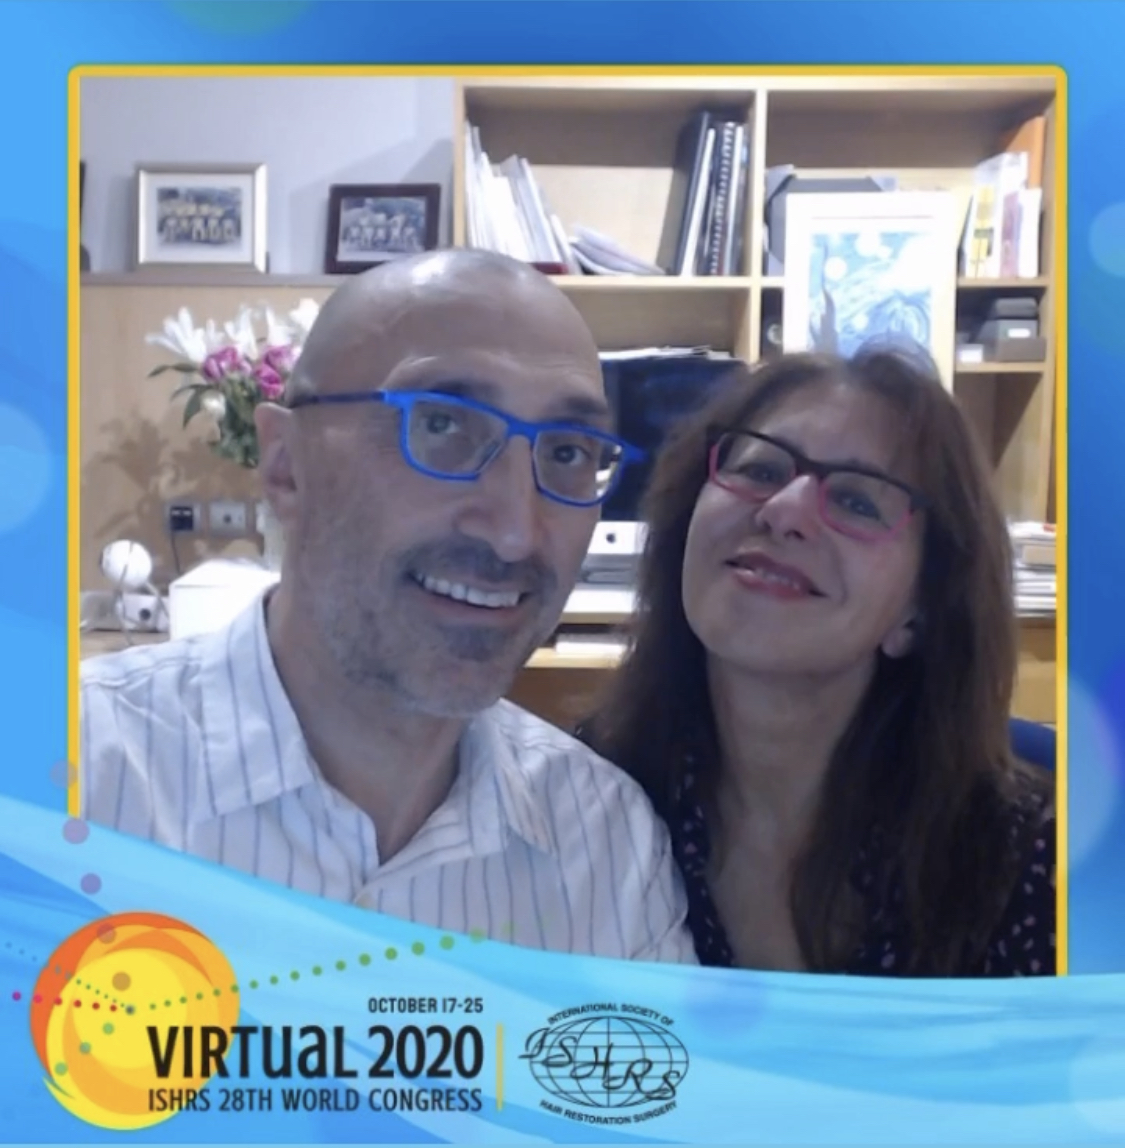 Dr Bessam & Nilofer Farjo Screenshot at virtual 2020 ISHRS